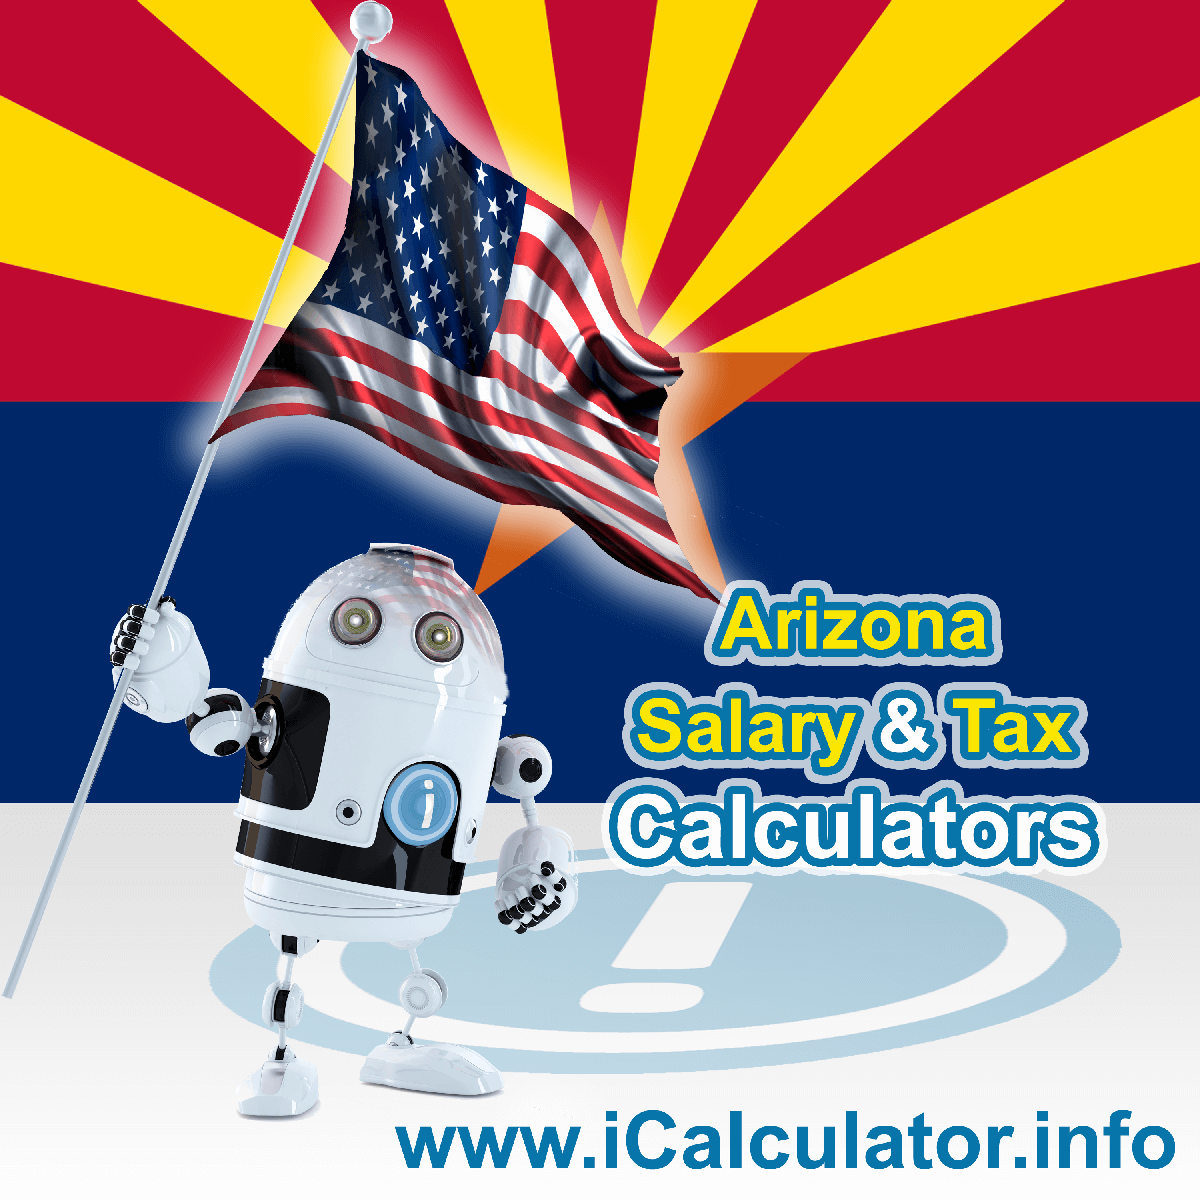 Arizona Salary Calculator 2020 | iCalculator | The Arizona Salary Calculator allows you to quickly calculate your salary after tax including Arizona State Tax, Federal State Tax, Medicare Deductions, Social Security, Capital Gains and other income tax and salary deductions complete with supporting Arizona state tax tables